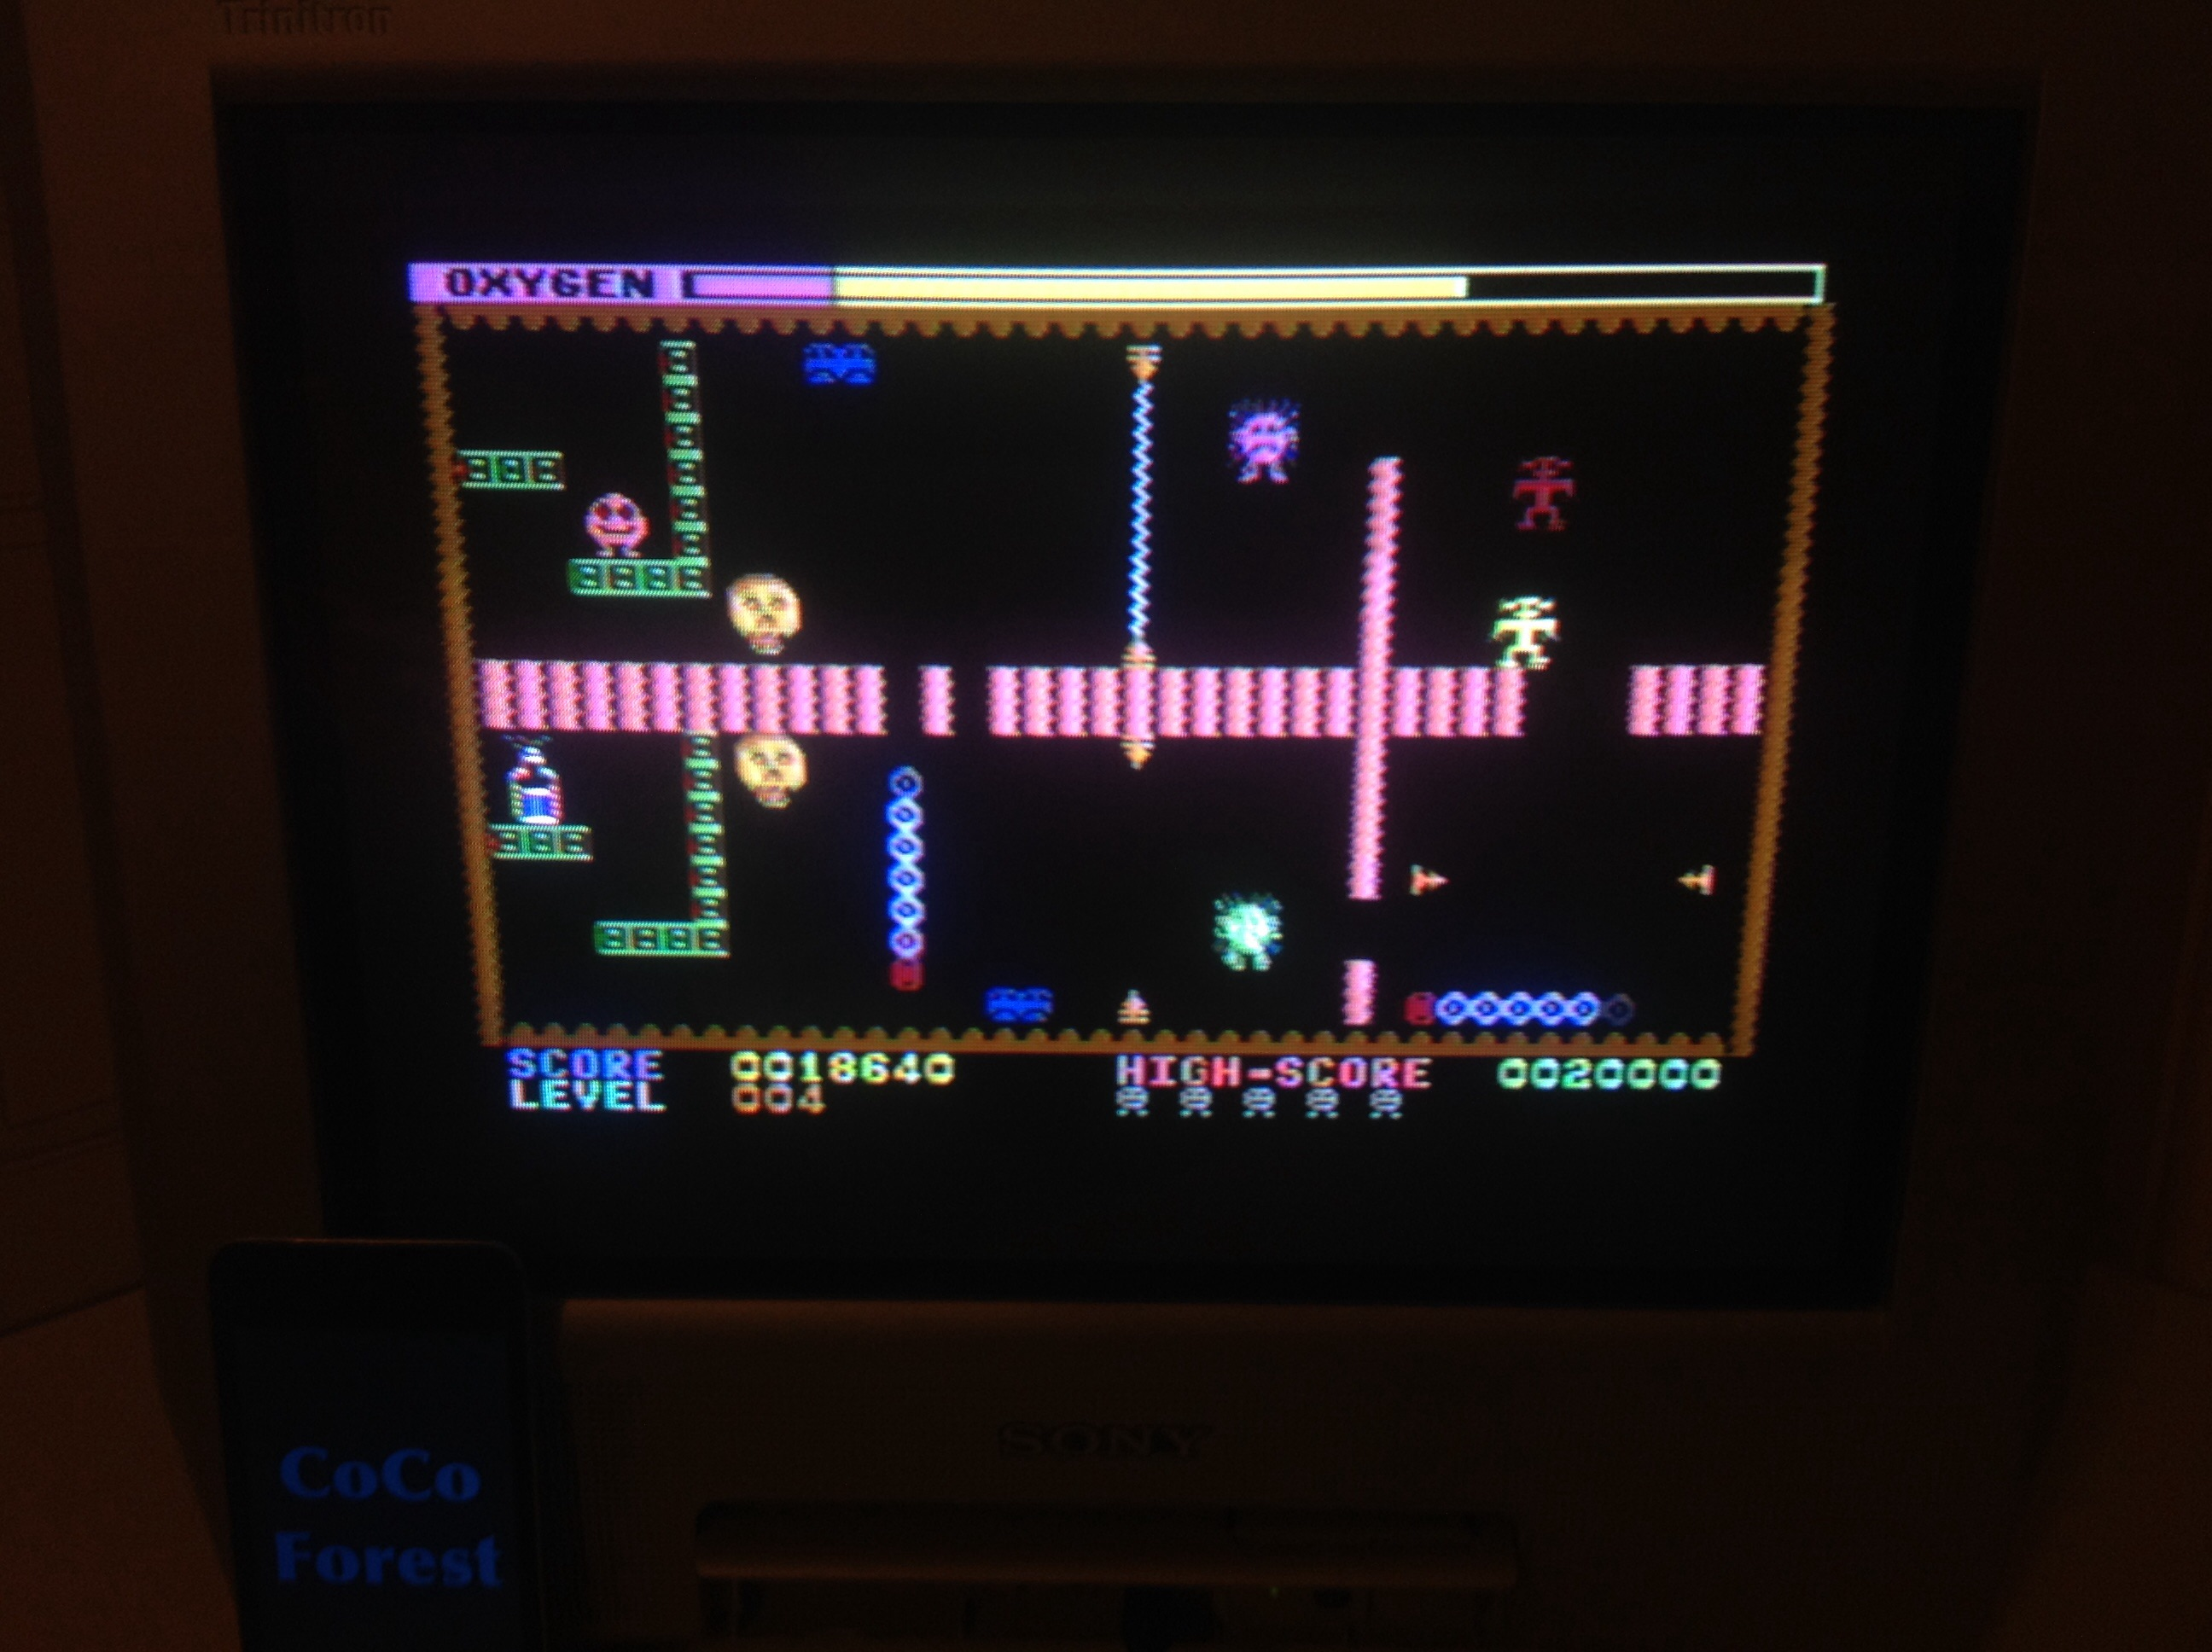 CoCoForest: Dinky Doo (Commodore 64) 18,640 points on 2015-03-16 14:40:19